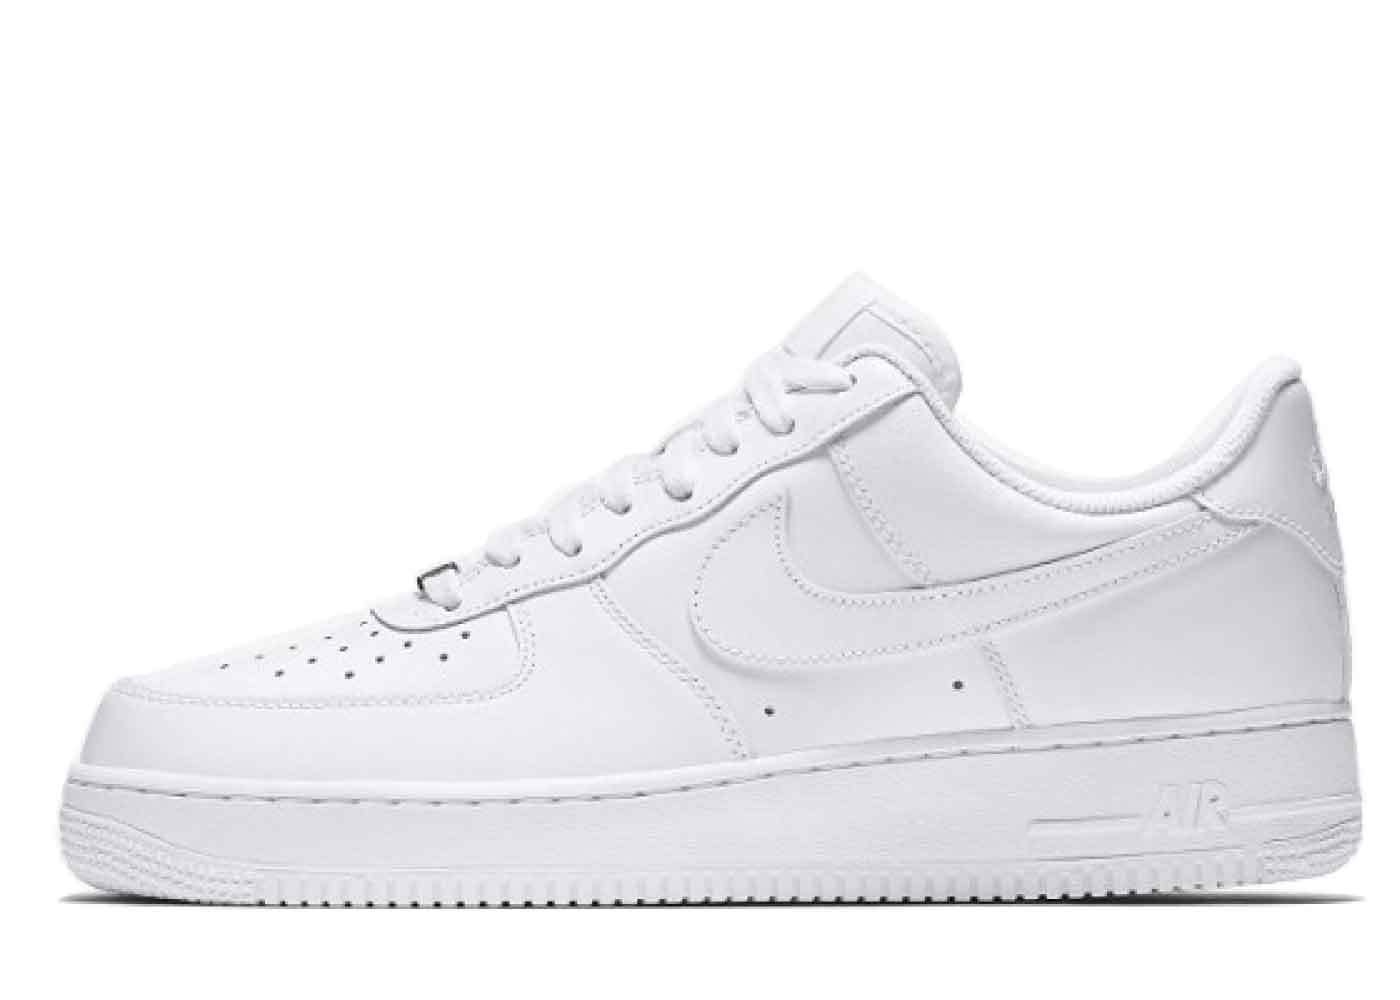 Nike Air Force 1 Low 07 Whiteの写真